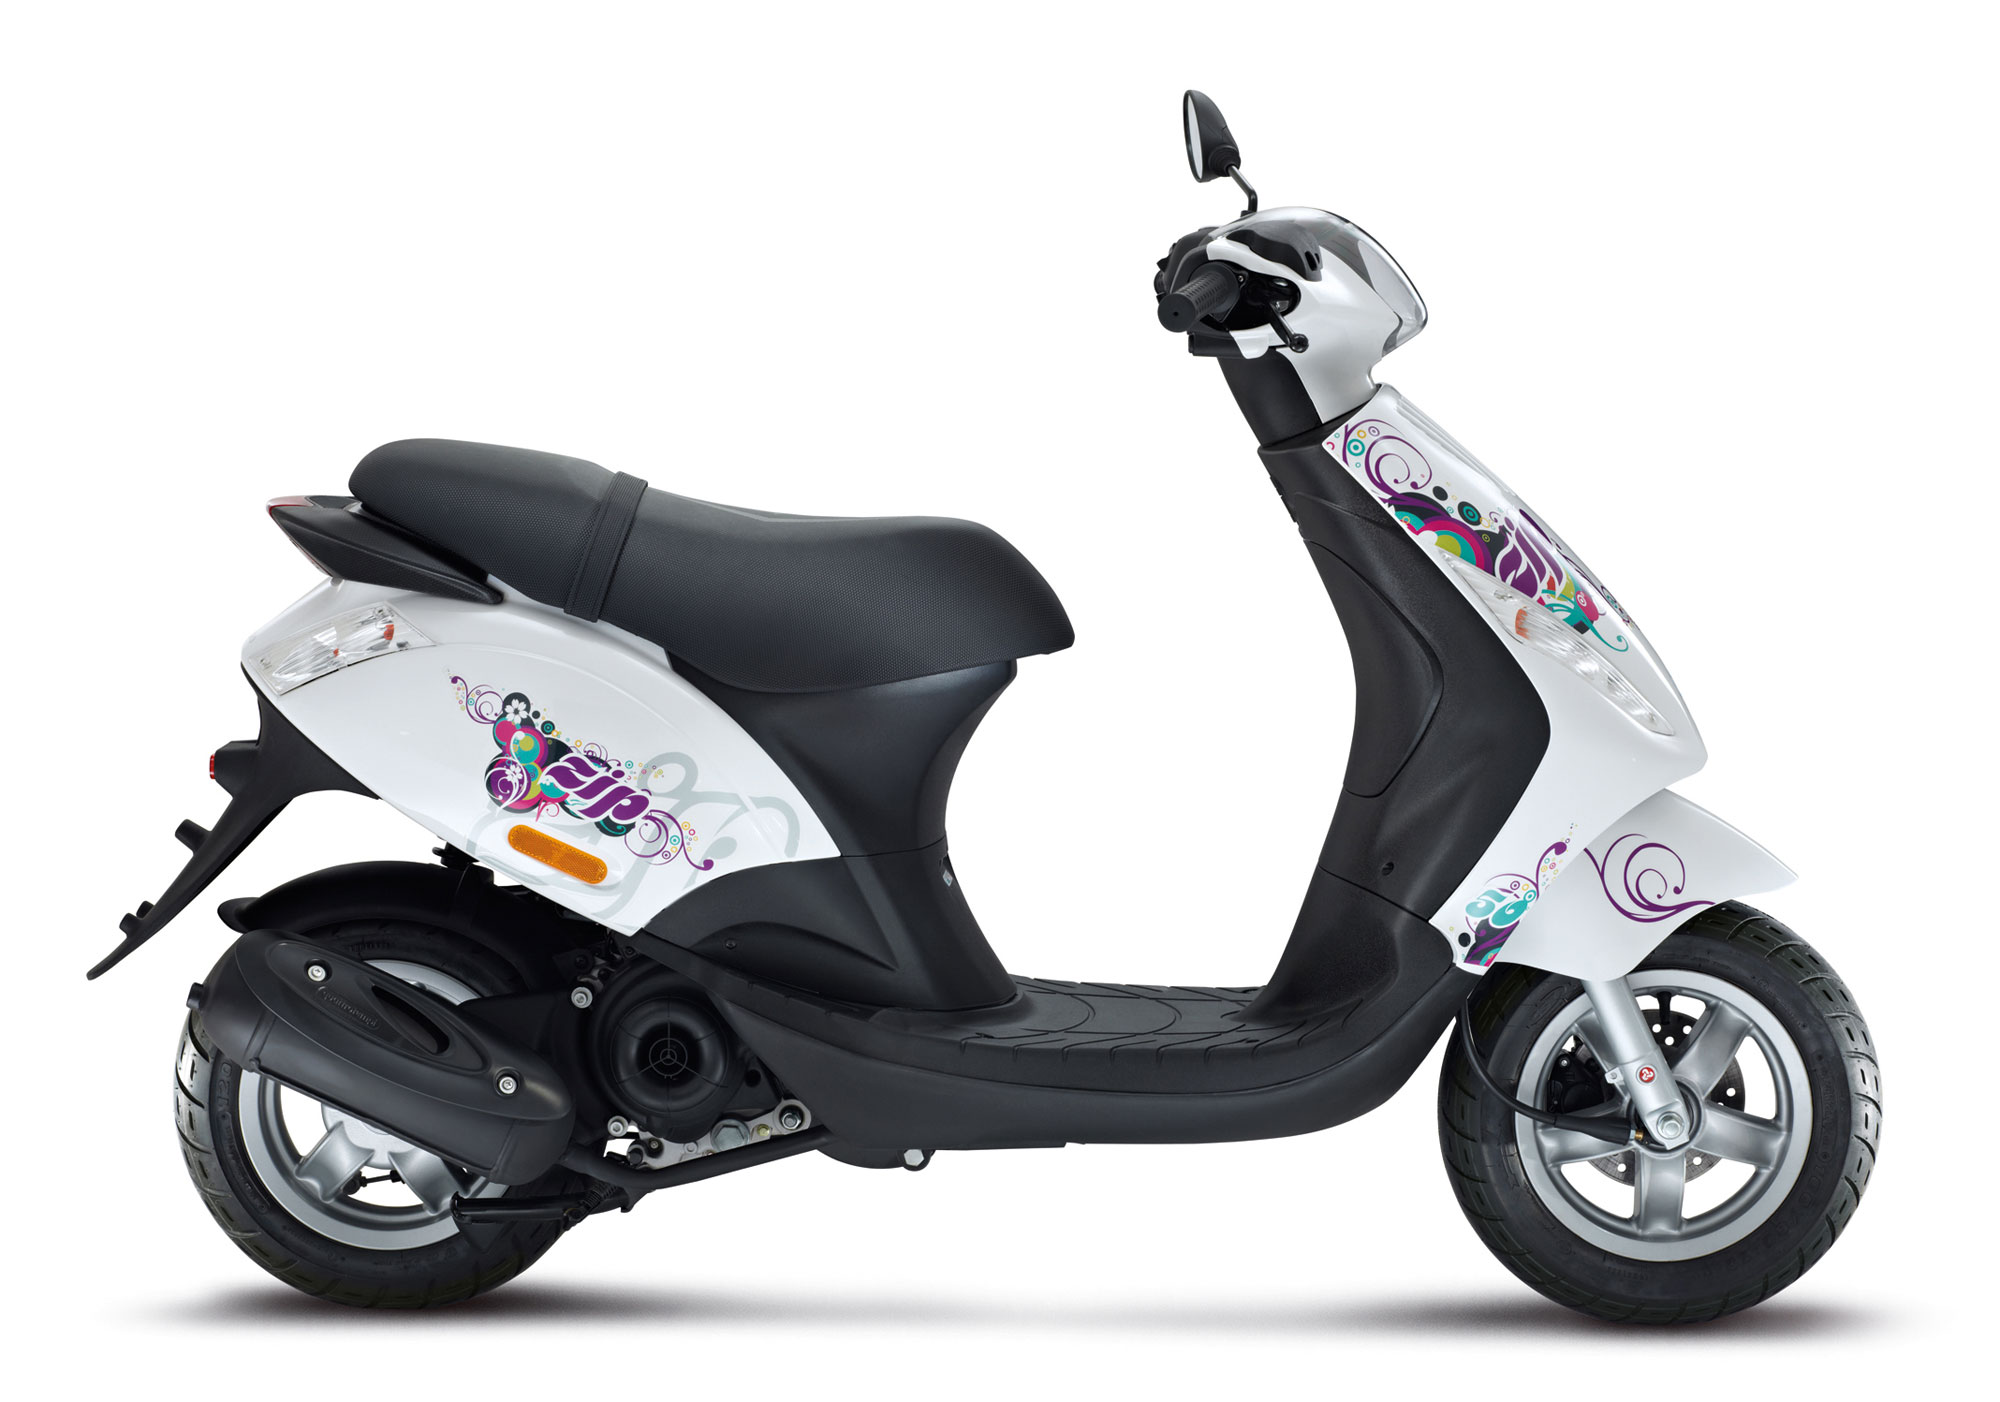 piaggio zip 50cc scooterfun rentals your scooter. Black Bedroom Furniture Sets. Home Design Ideas